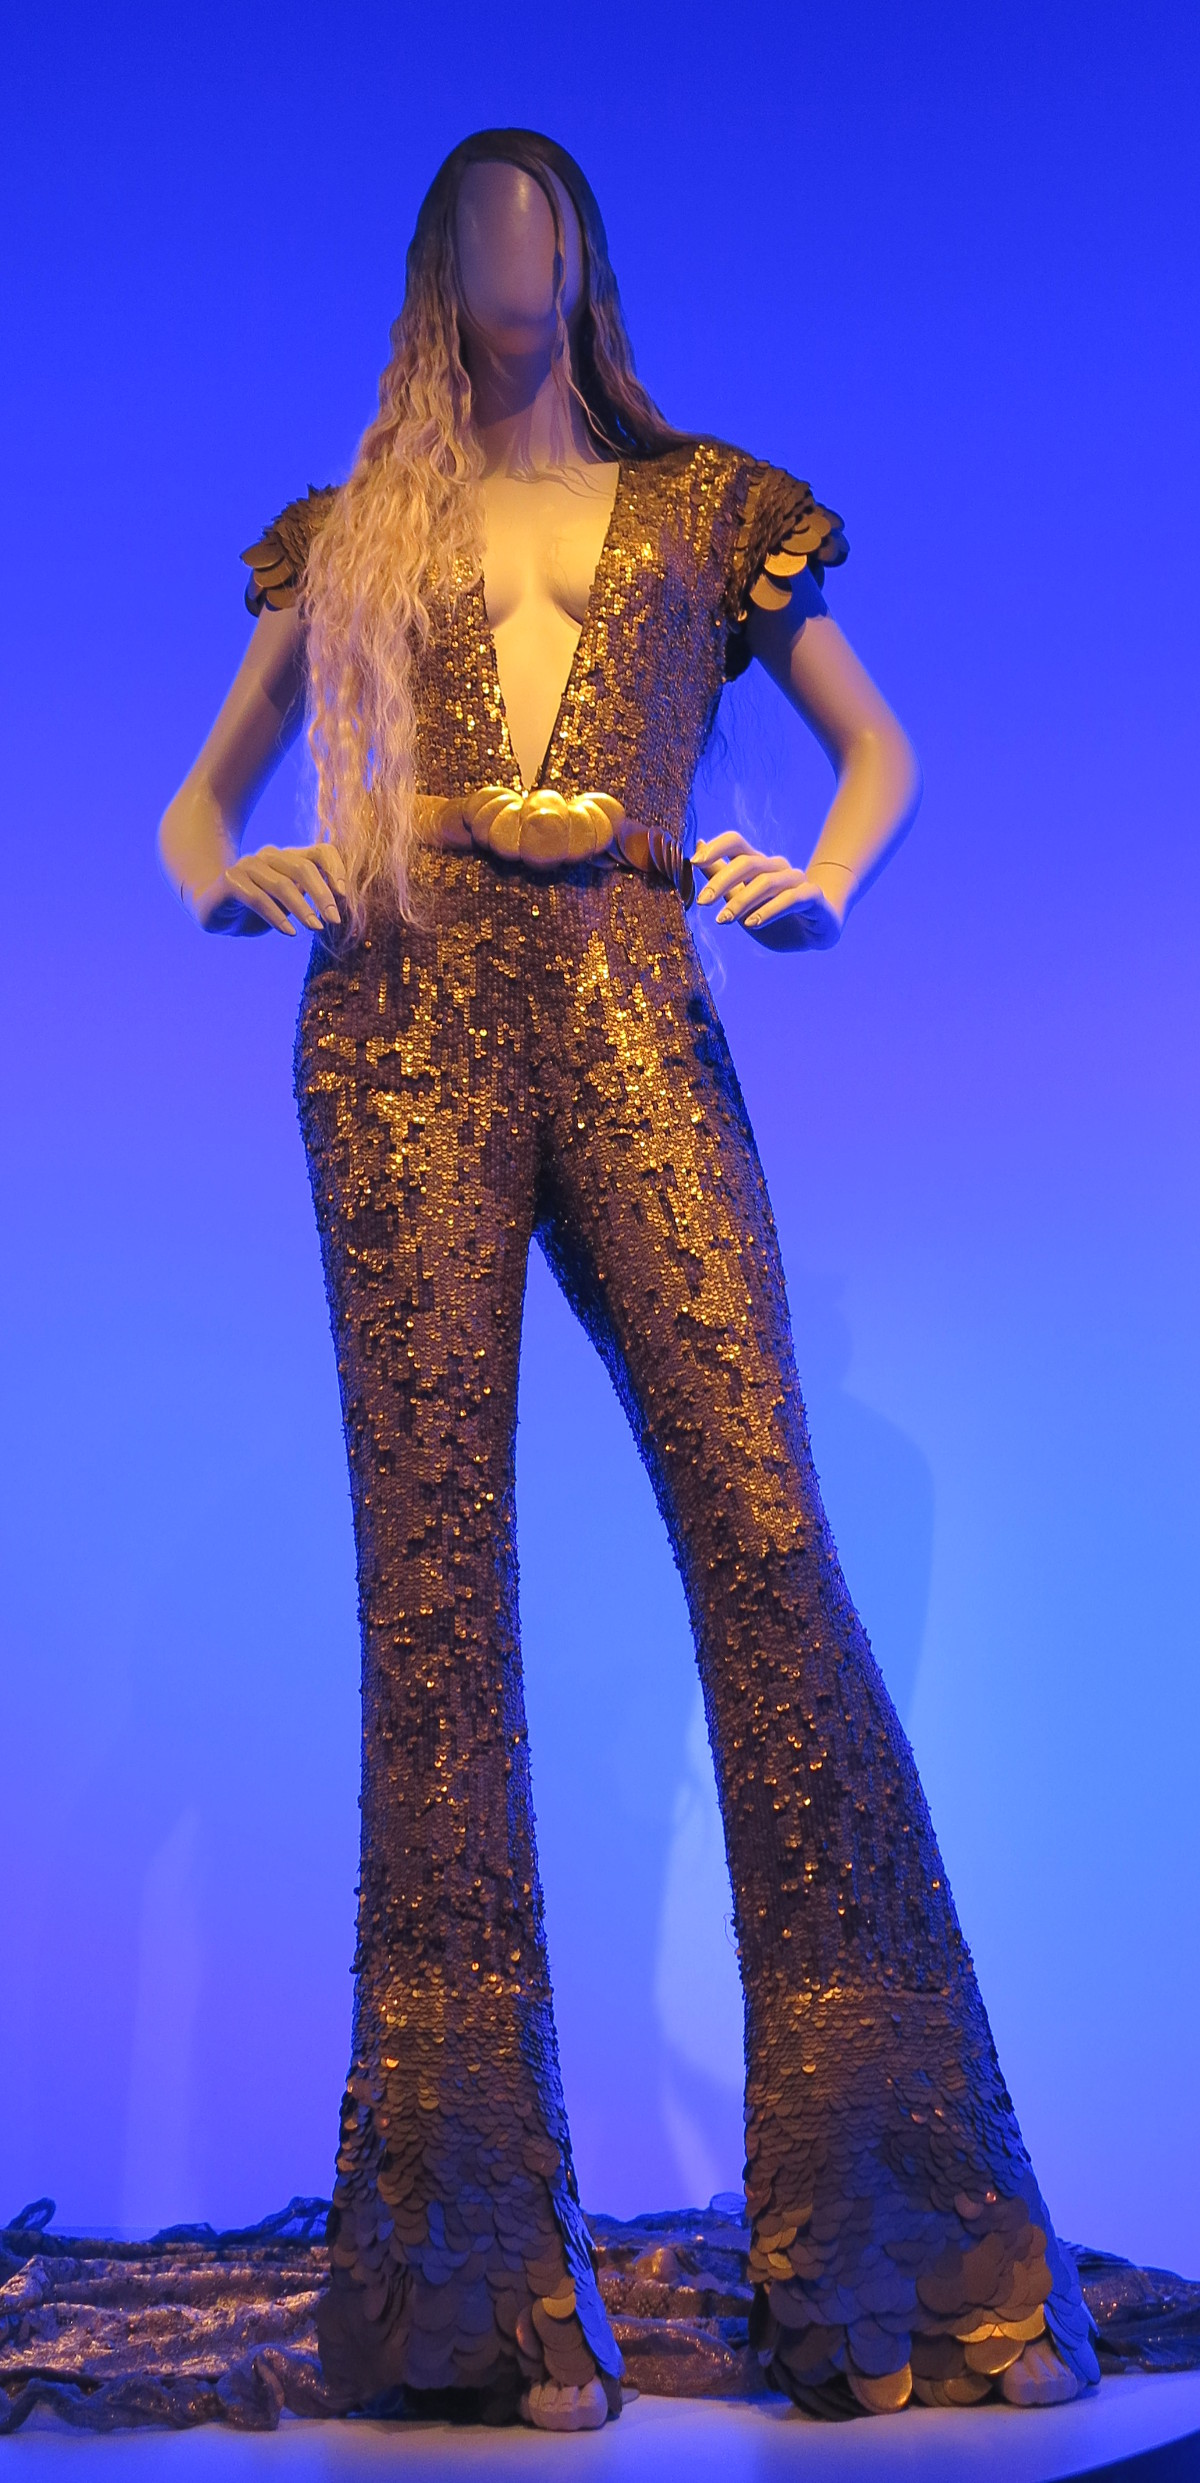 Gold outfit Jean Paul Gaultier National Gallery of Victoria